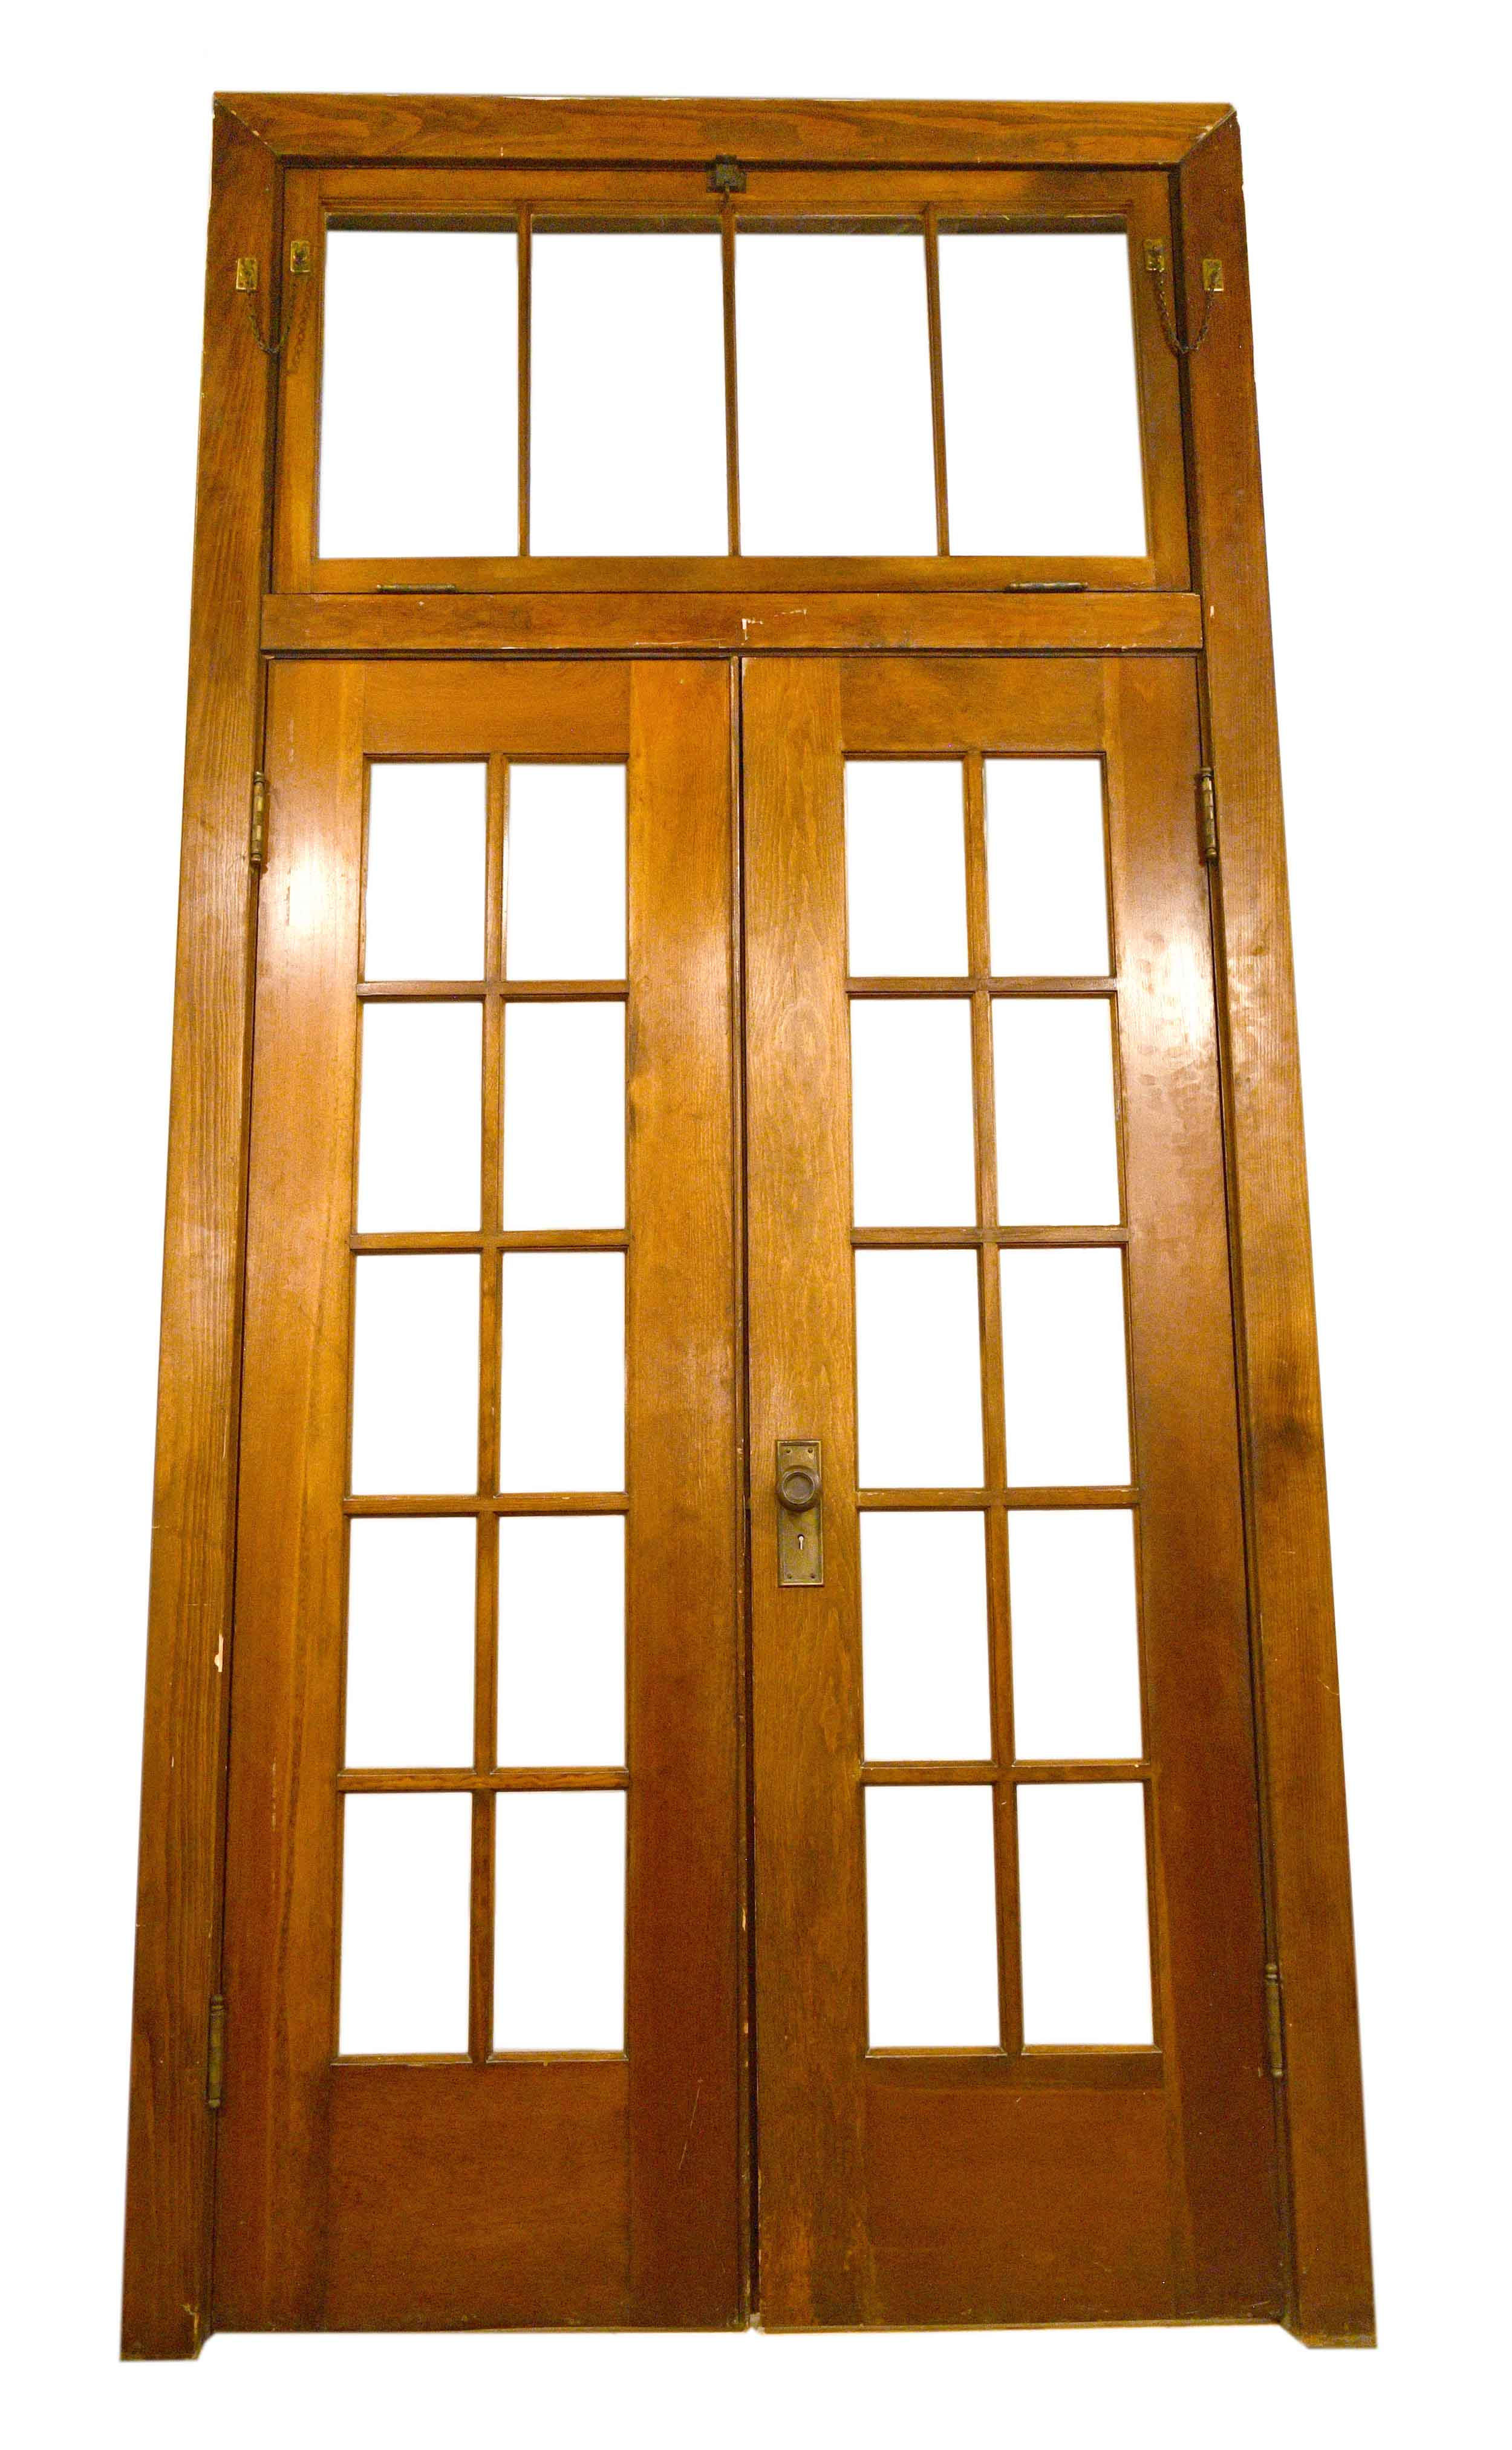 10-pane-glass-door-with-transom-4.jpg